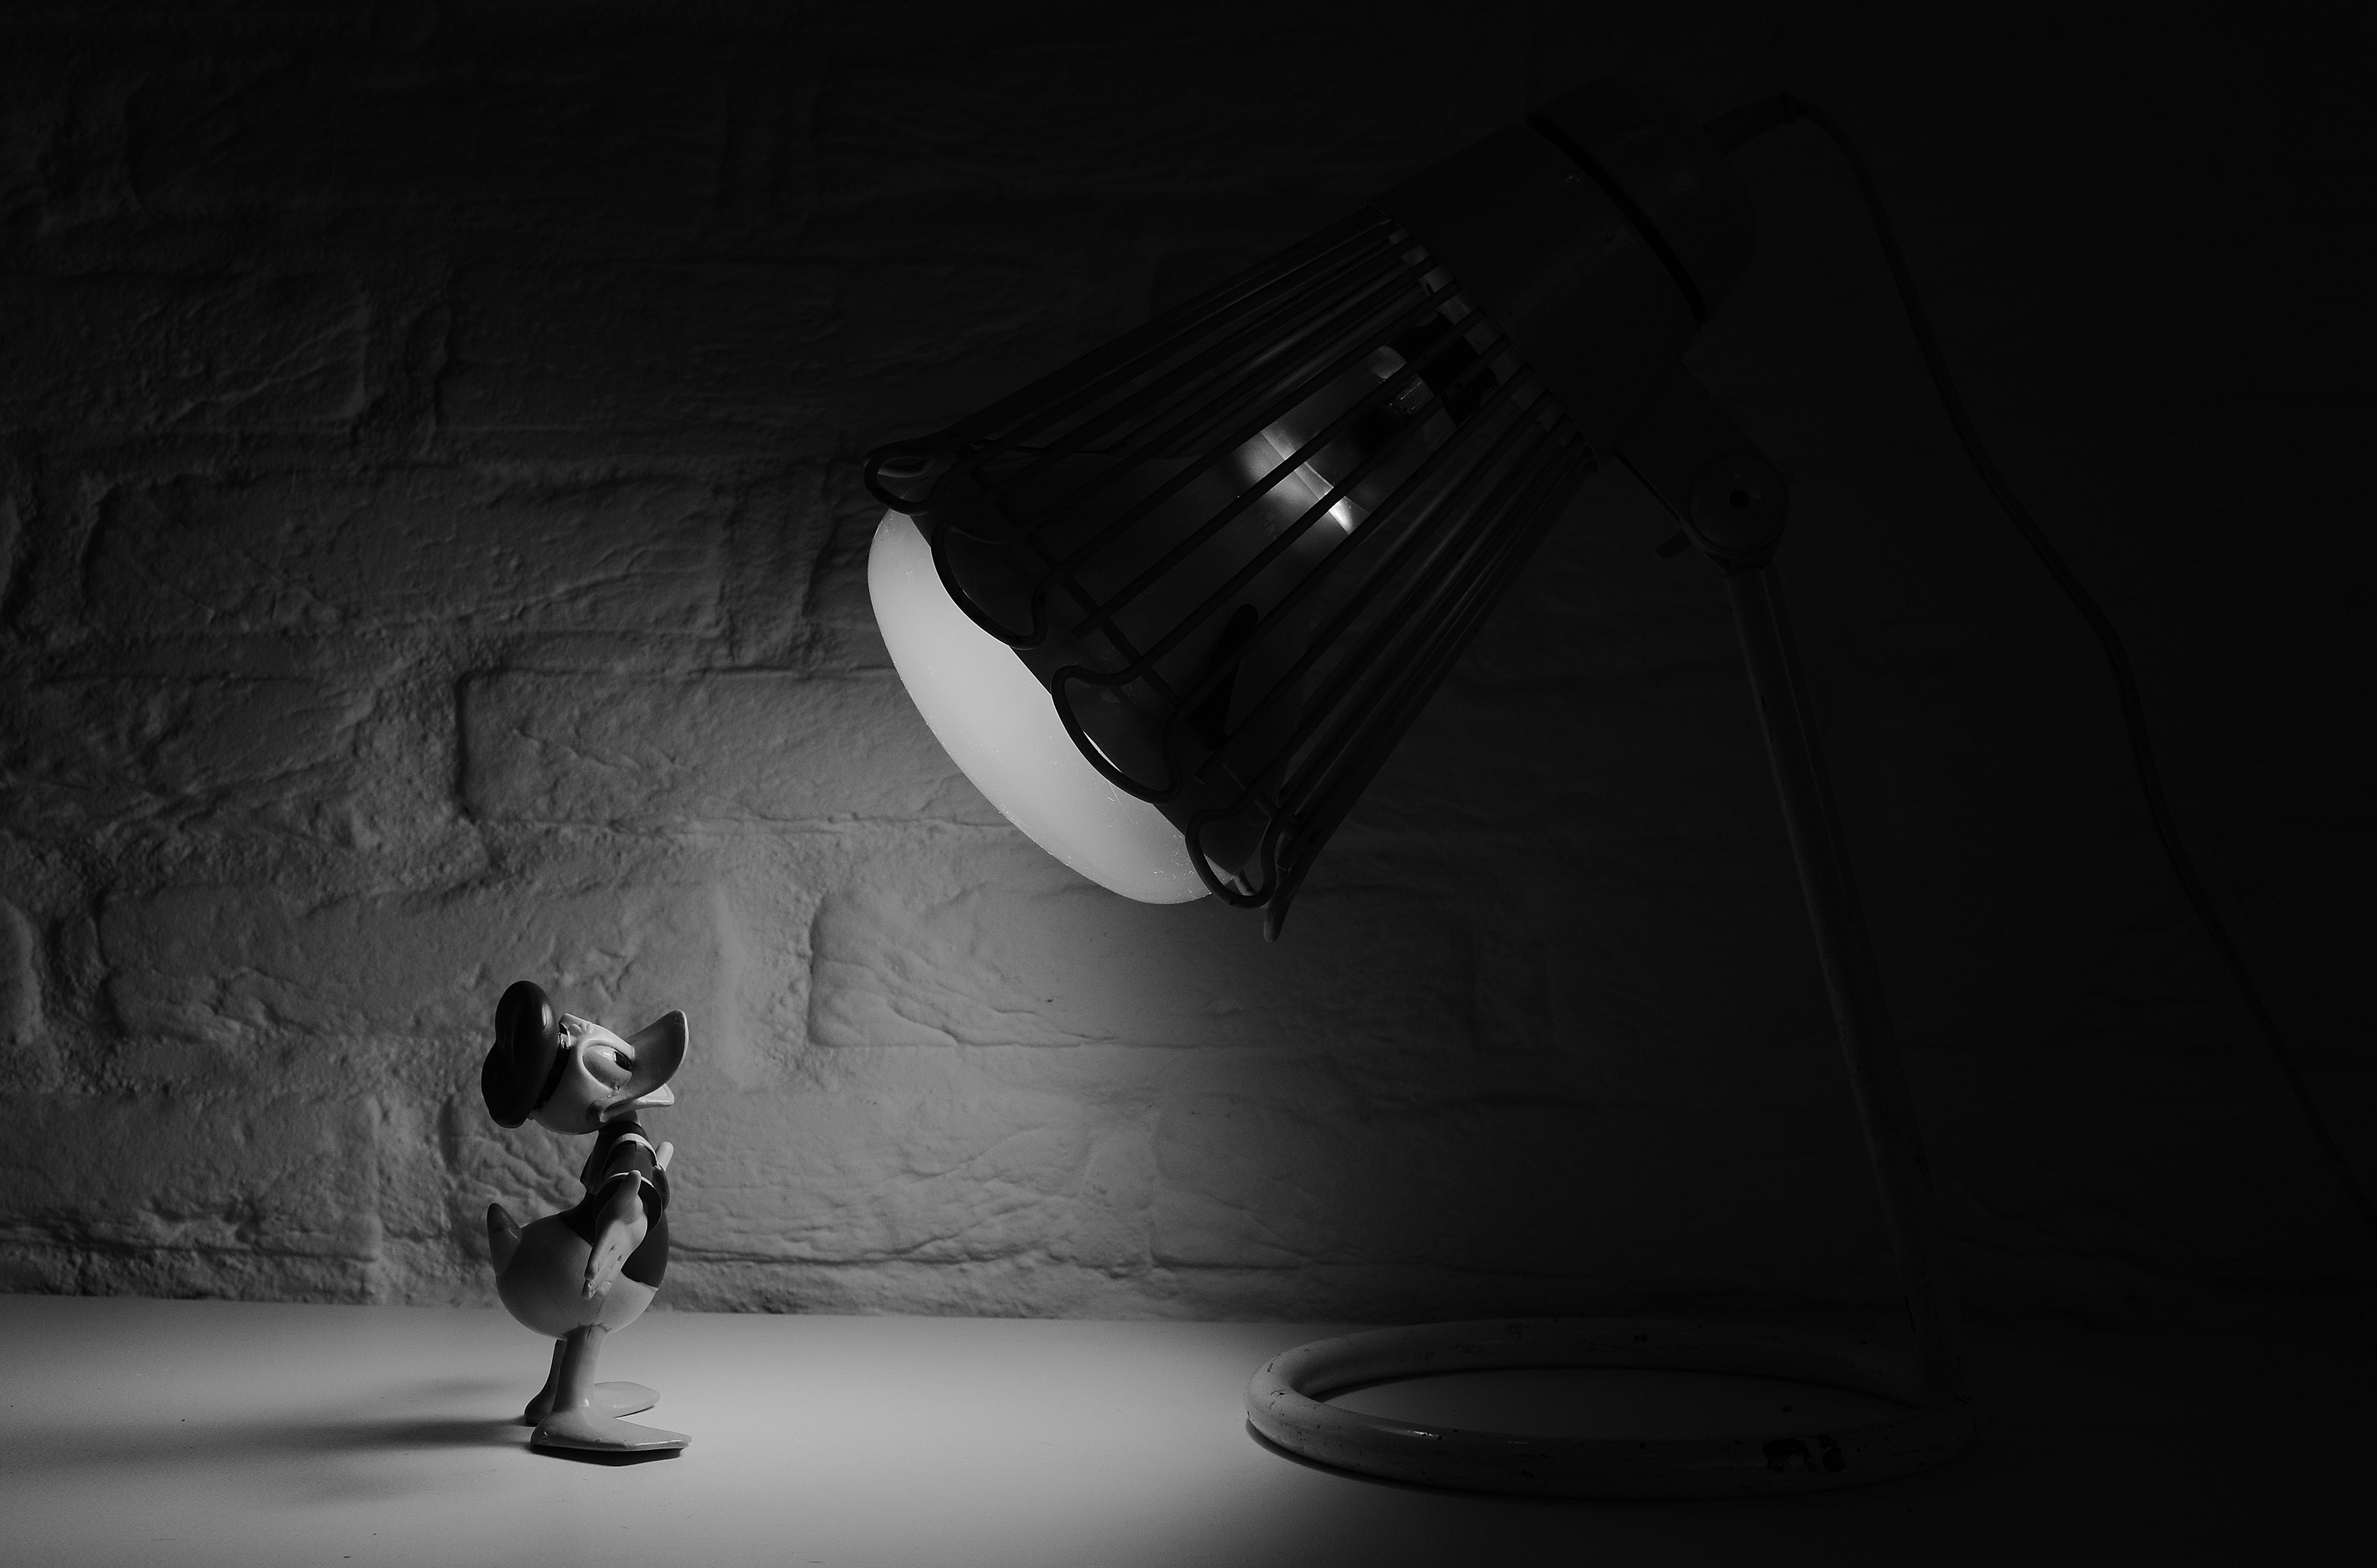 Grayscale Photography of Donald Duck in Front of Lamp